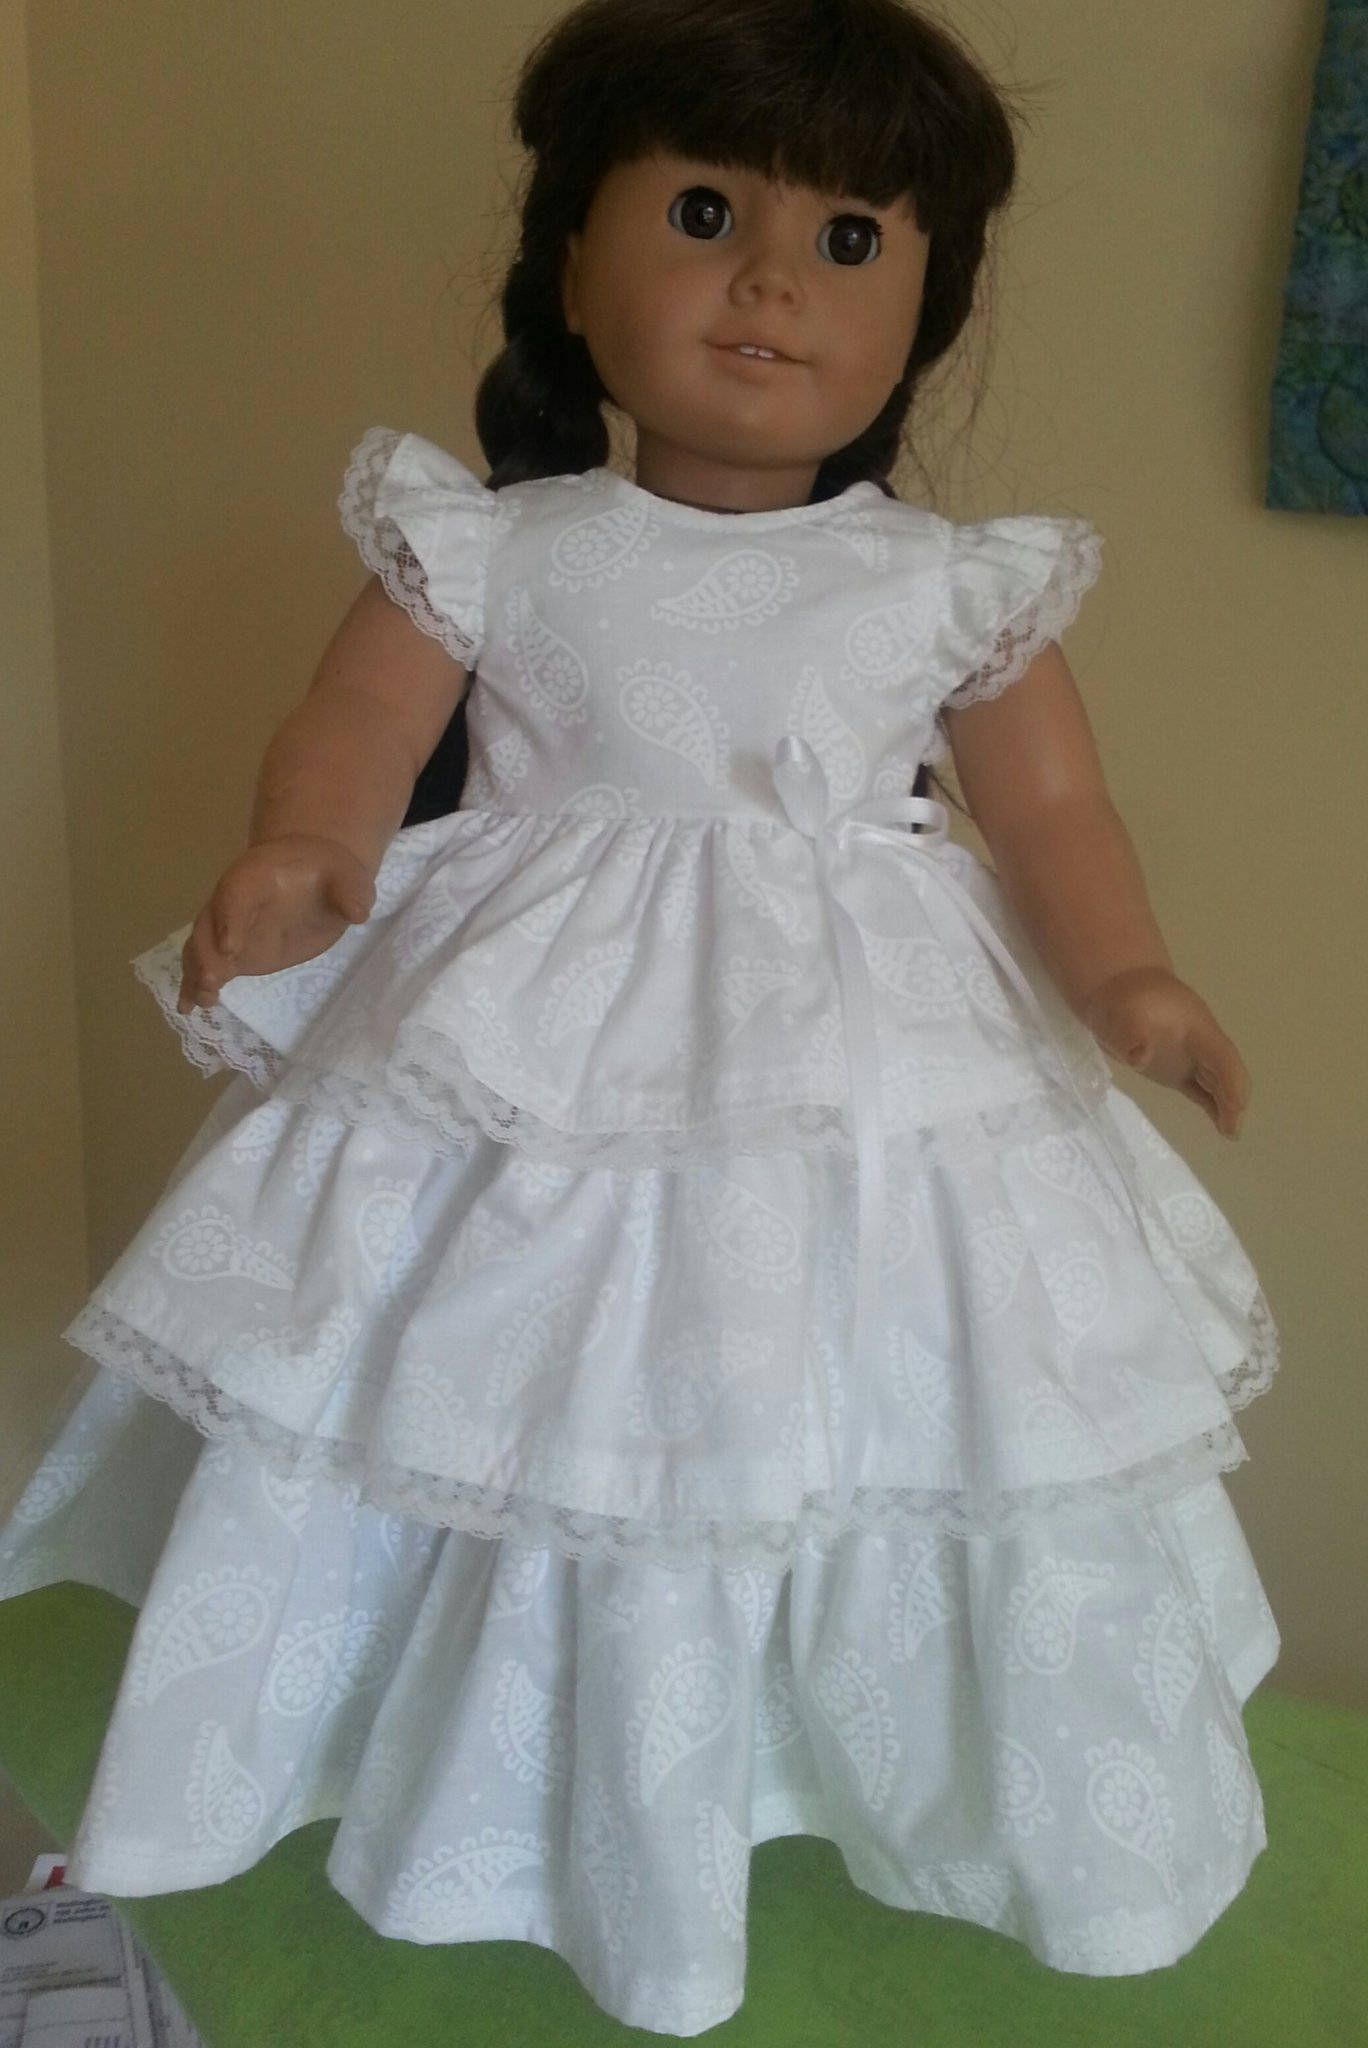 American girl doll floral ruffled dress free shipping by nmac on